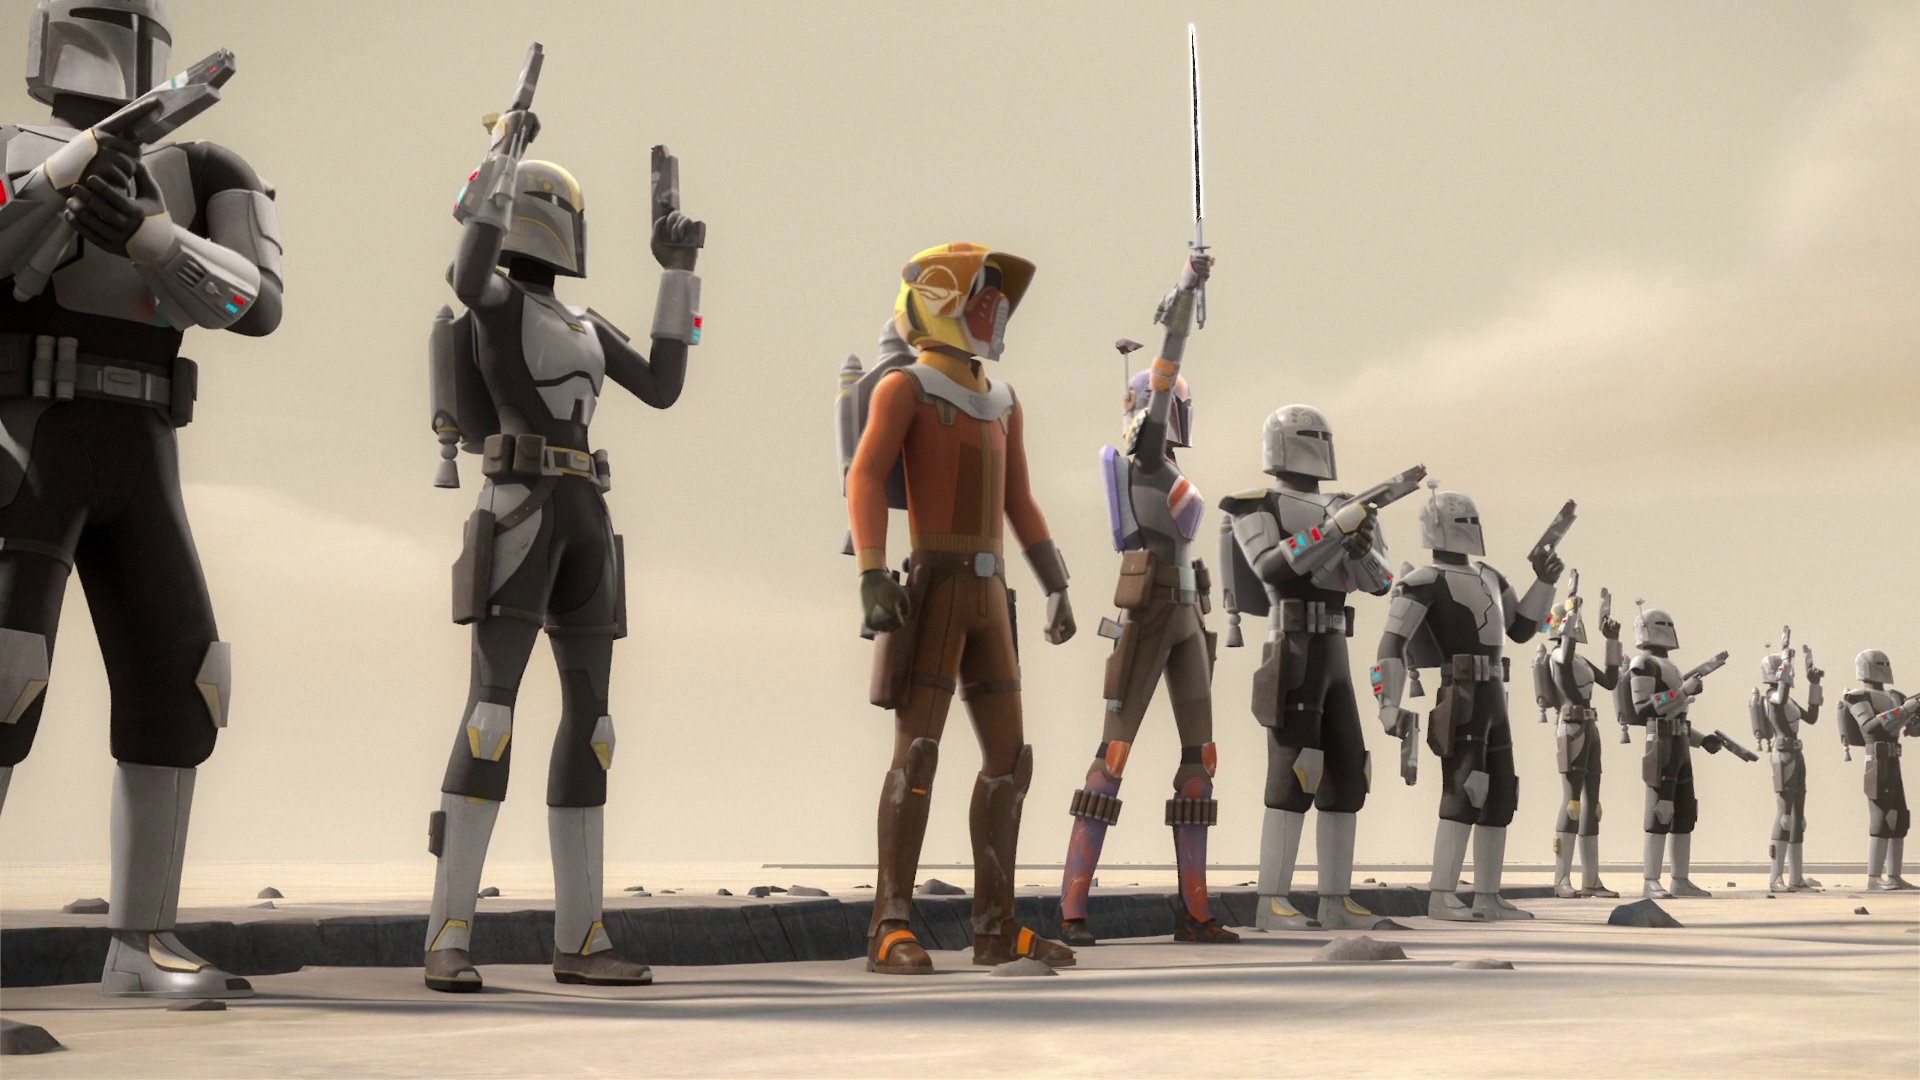 Imperial Empire Soldiers